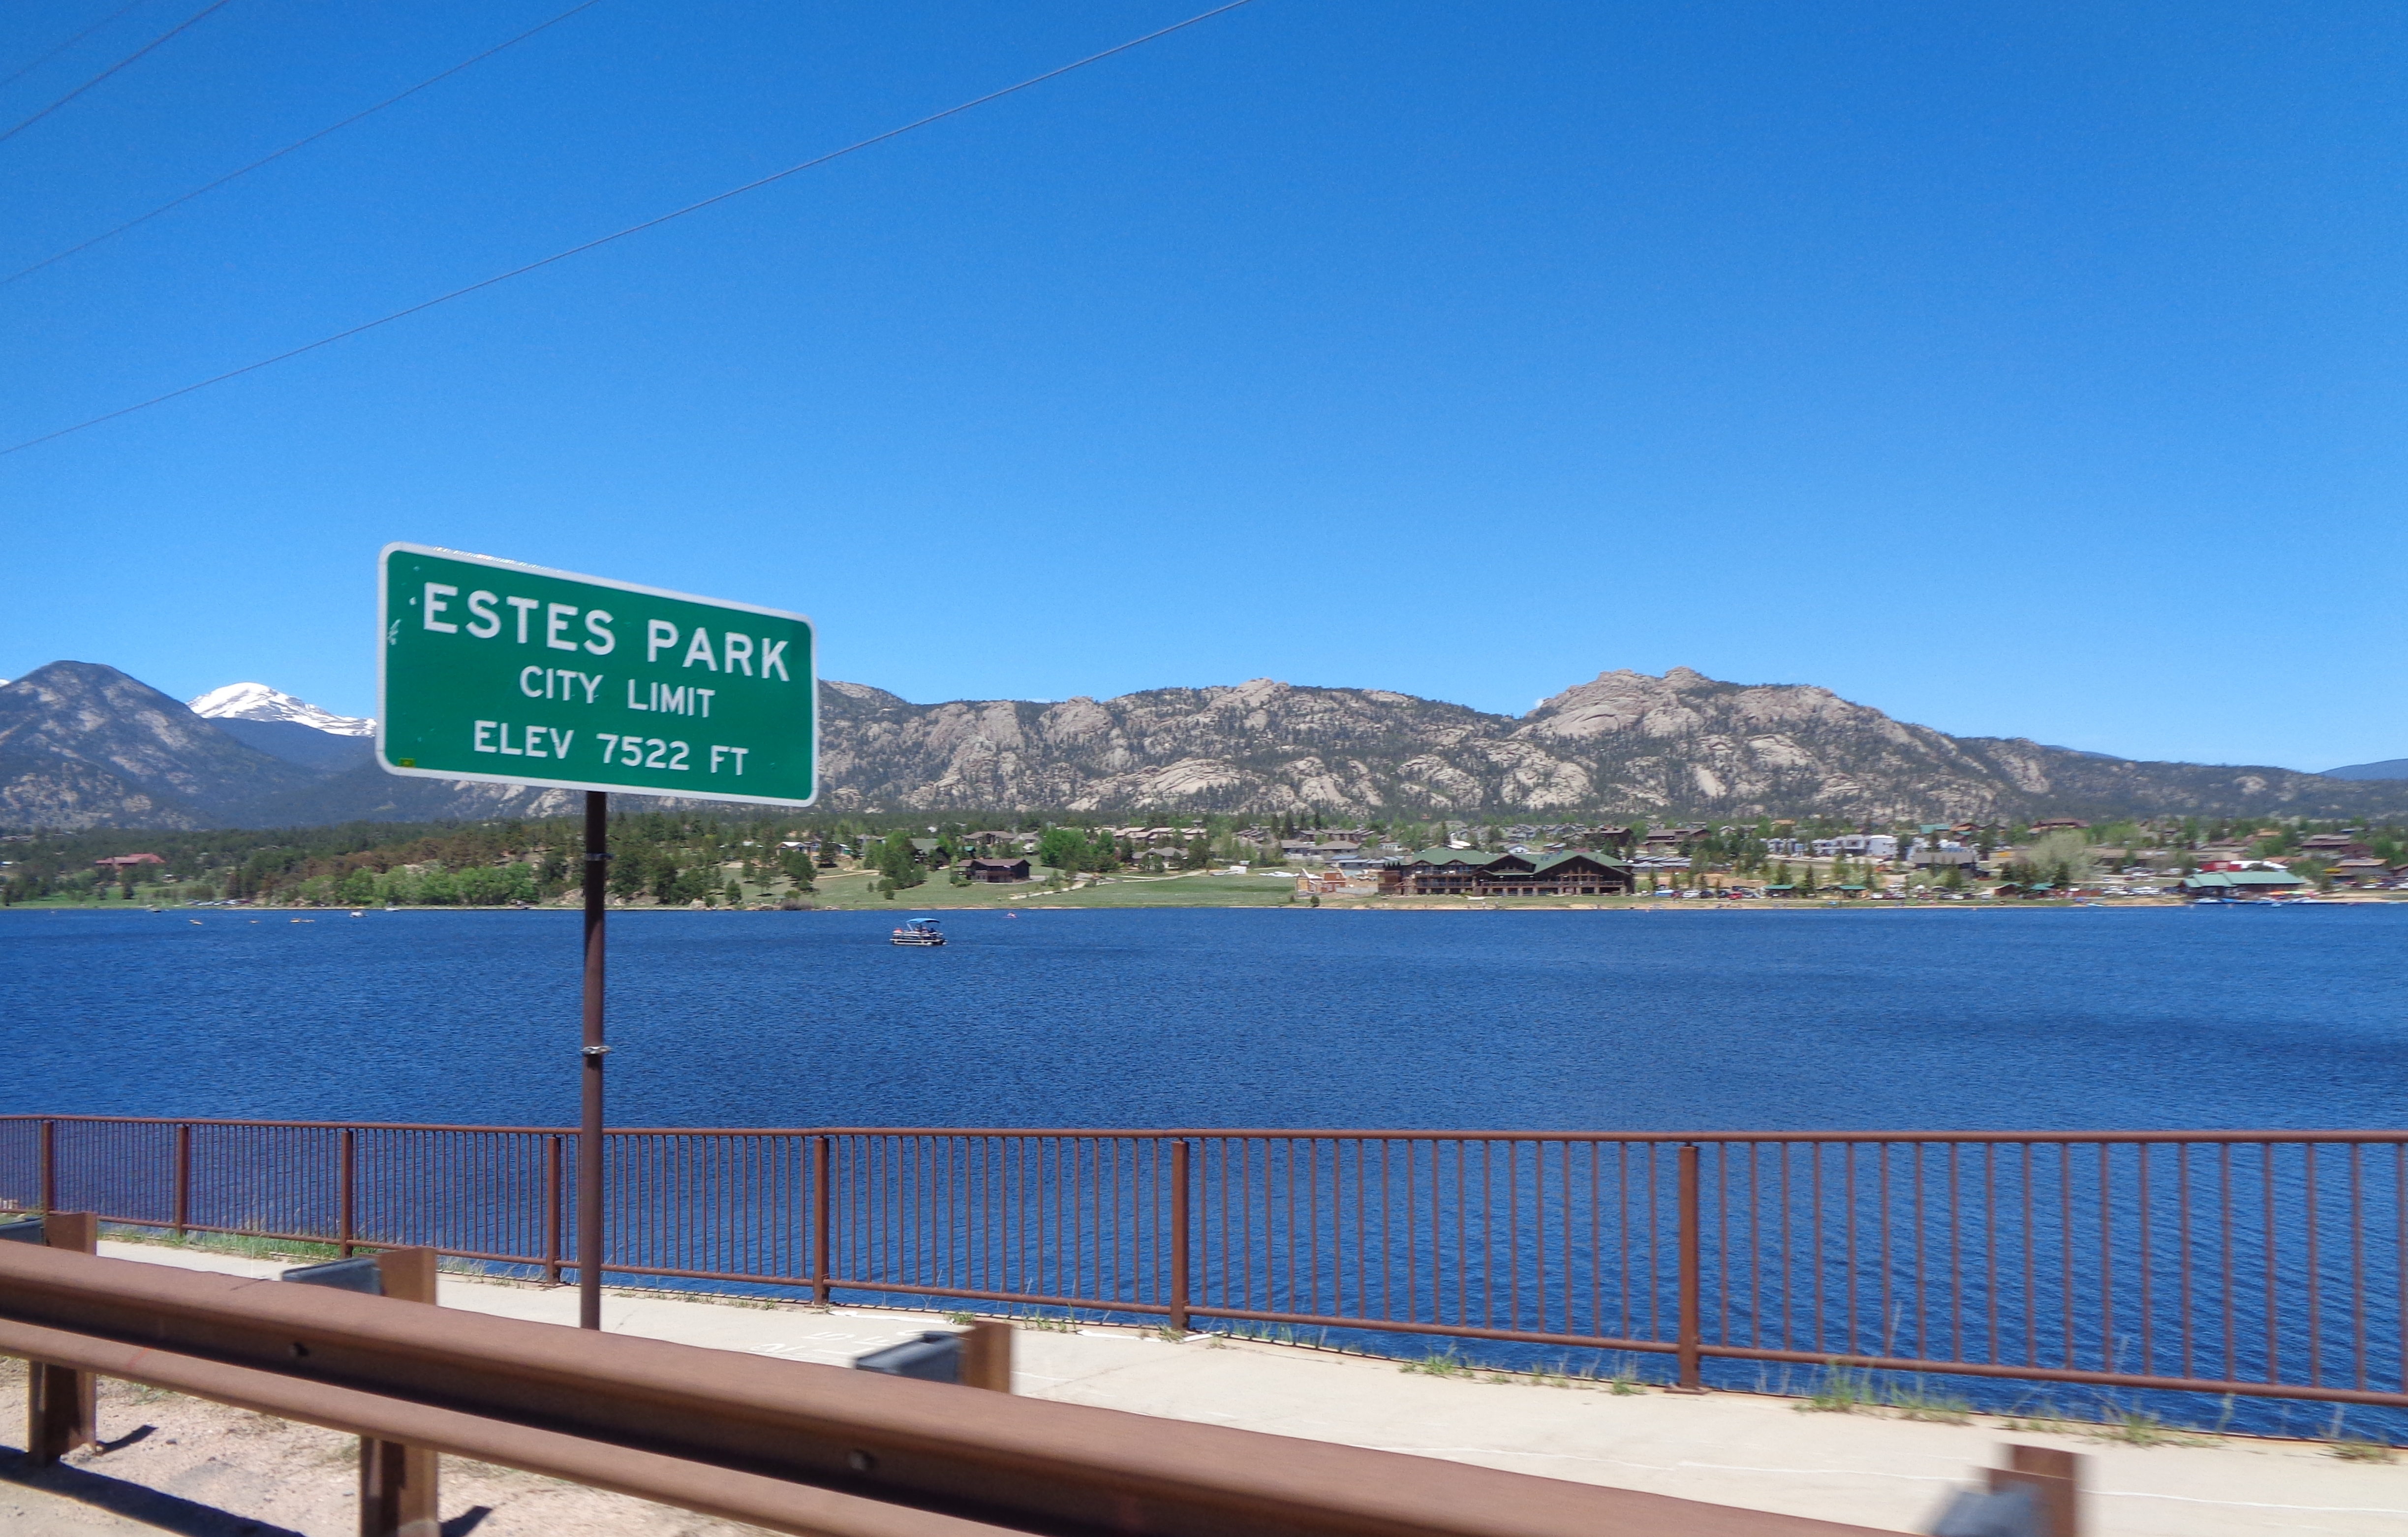 An Estes Park City Limit sign welcomes passersby on a bridge into town